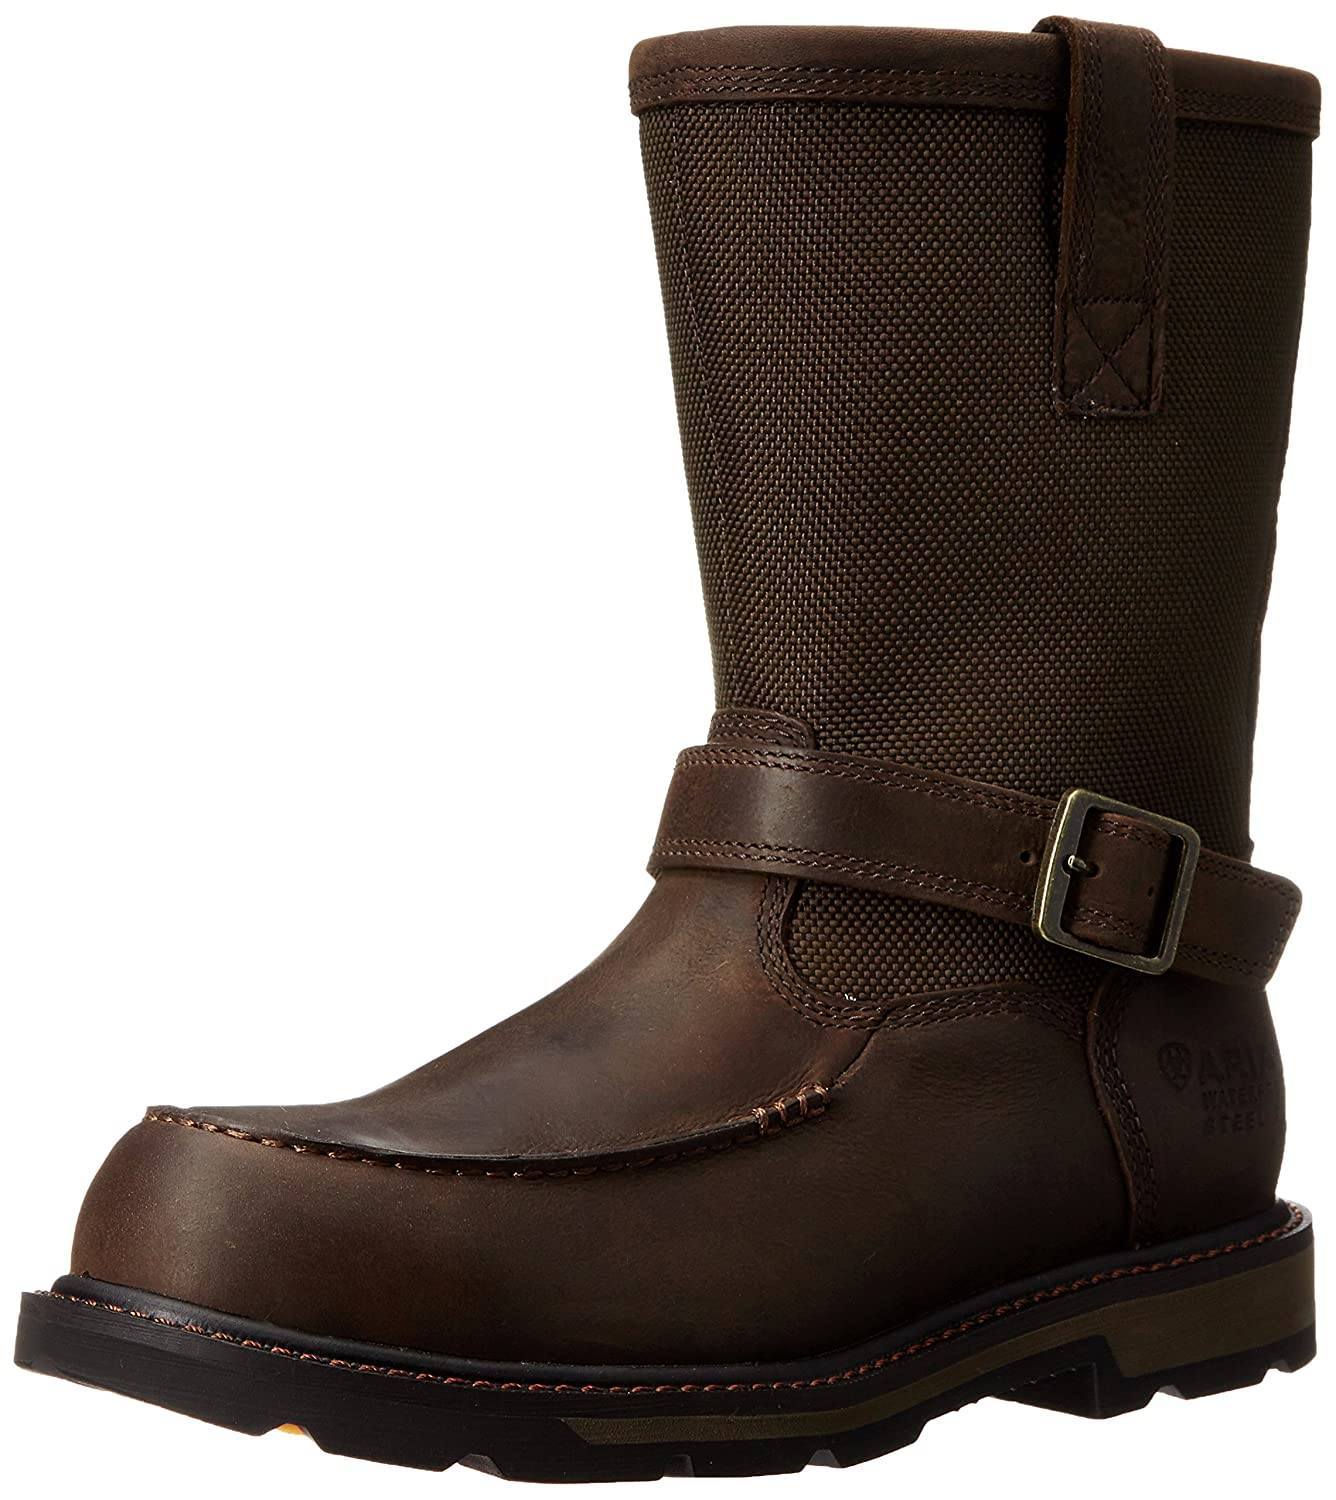 Ariat メンズ B013TCPAK0  Dark Brown/Dark Olive Cordura 13 2E US